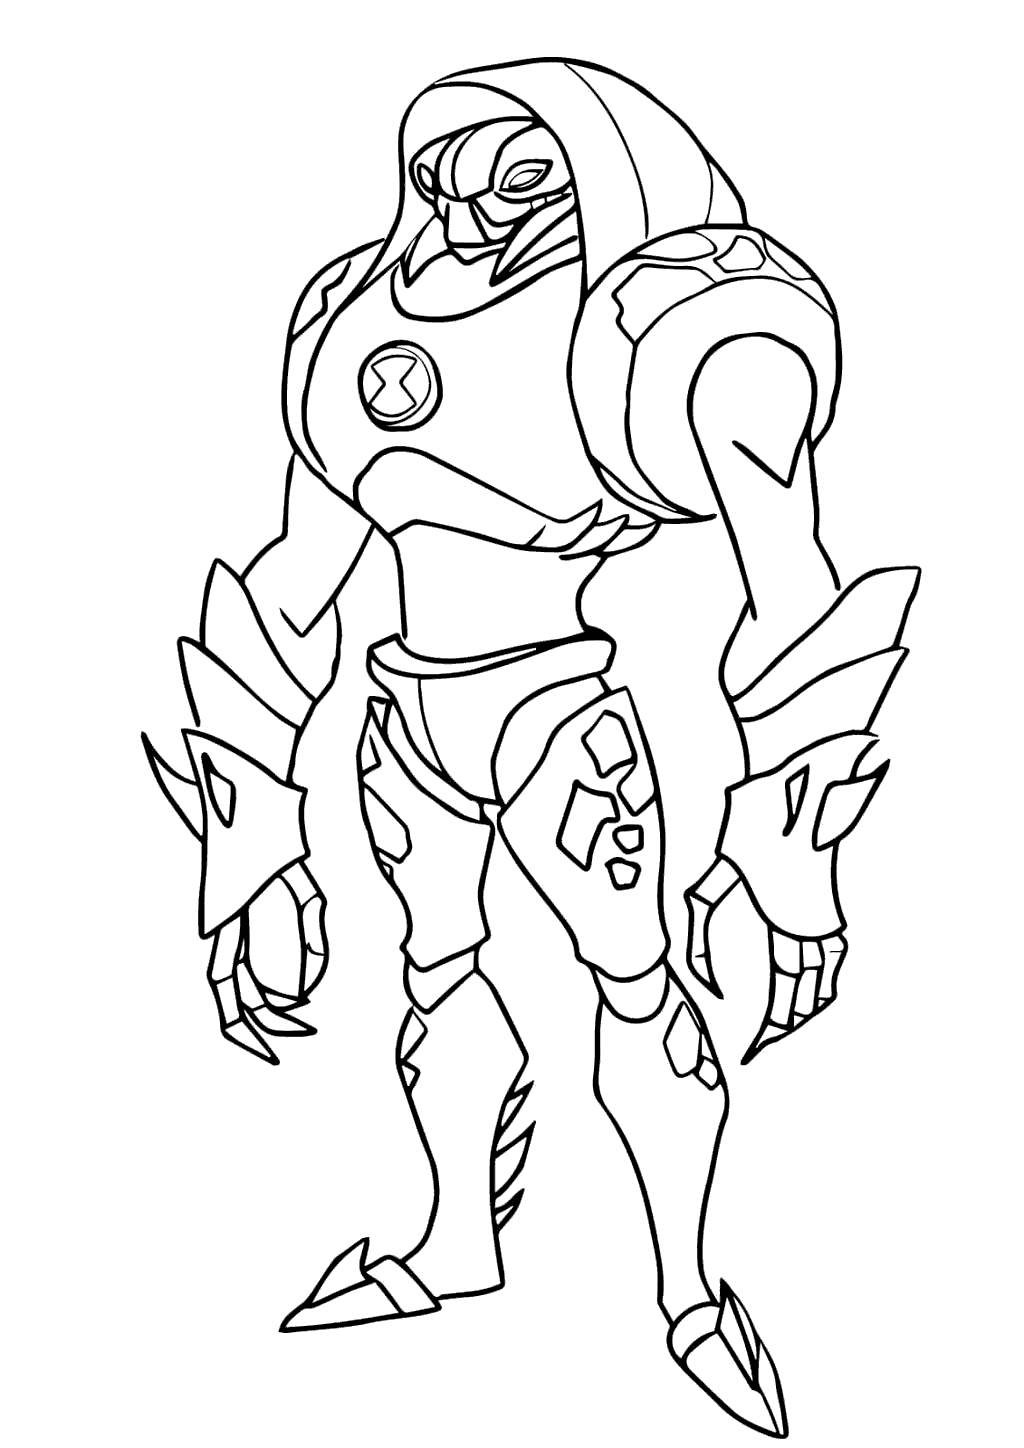 Ben 10 Omniverse Alien Coloring Pages Lineart - Free